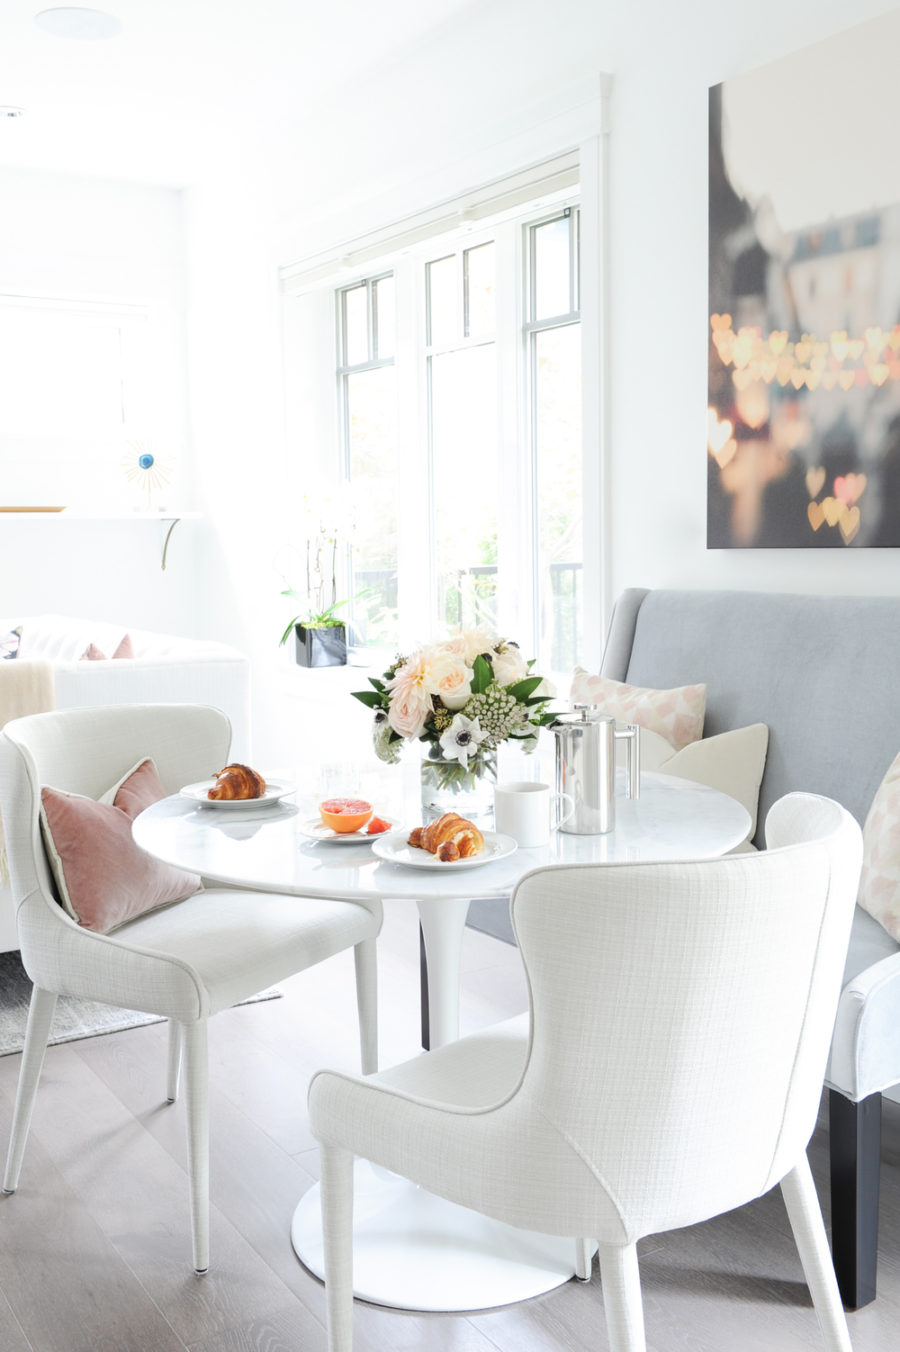 Modern Breakfast Nook Ideas That Will Make You Want to Become a ...